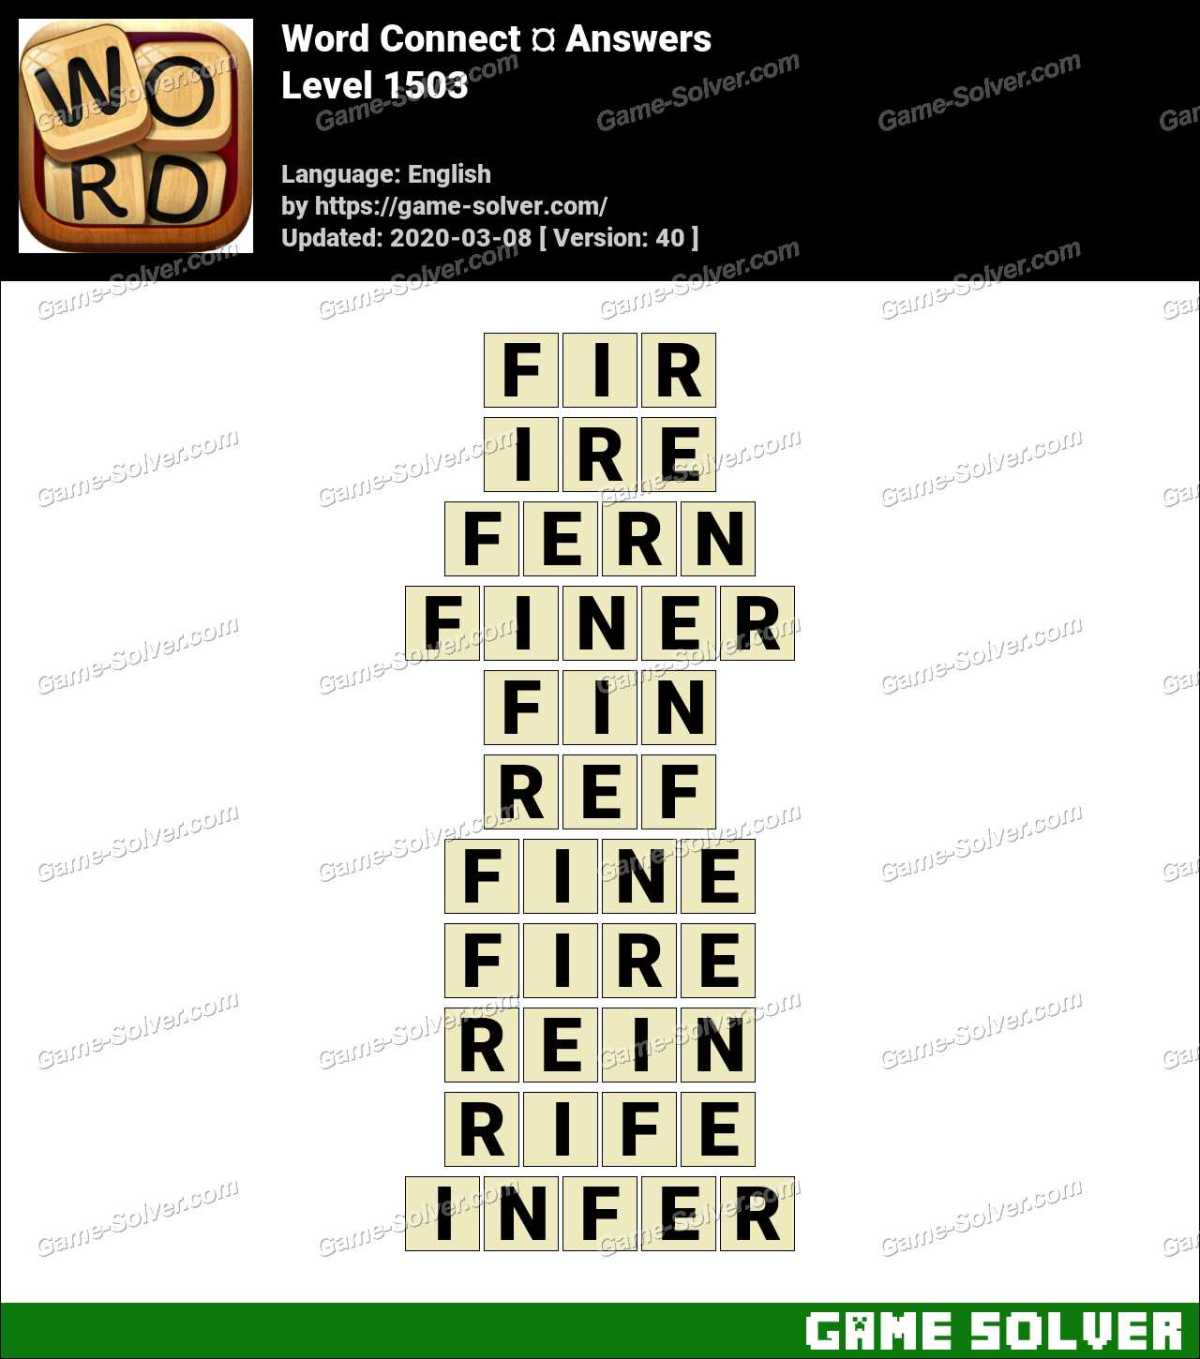 Word Connect Level 1503 Answers